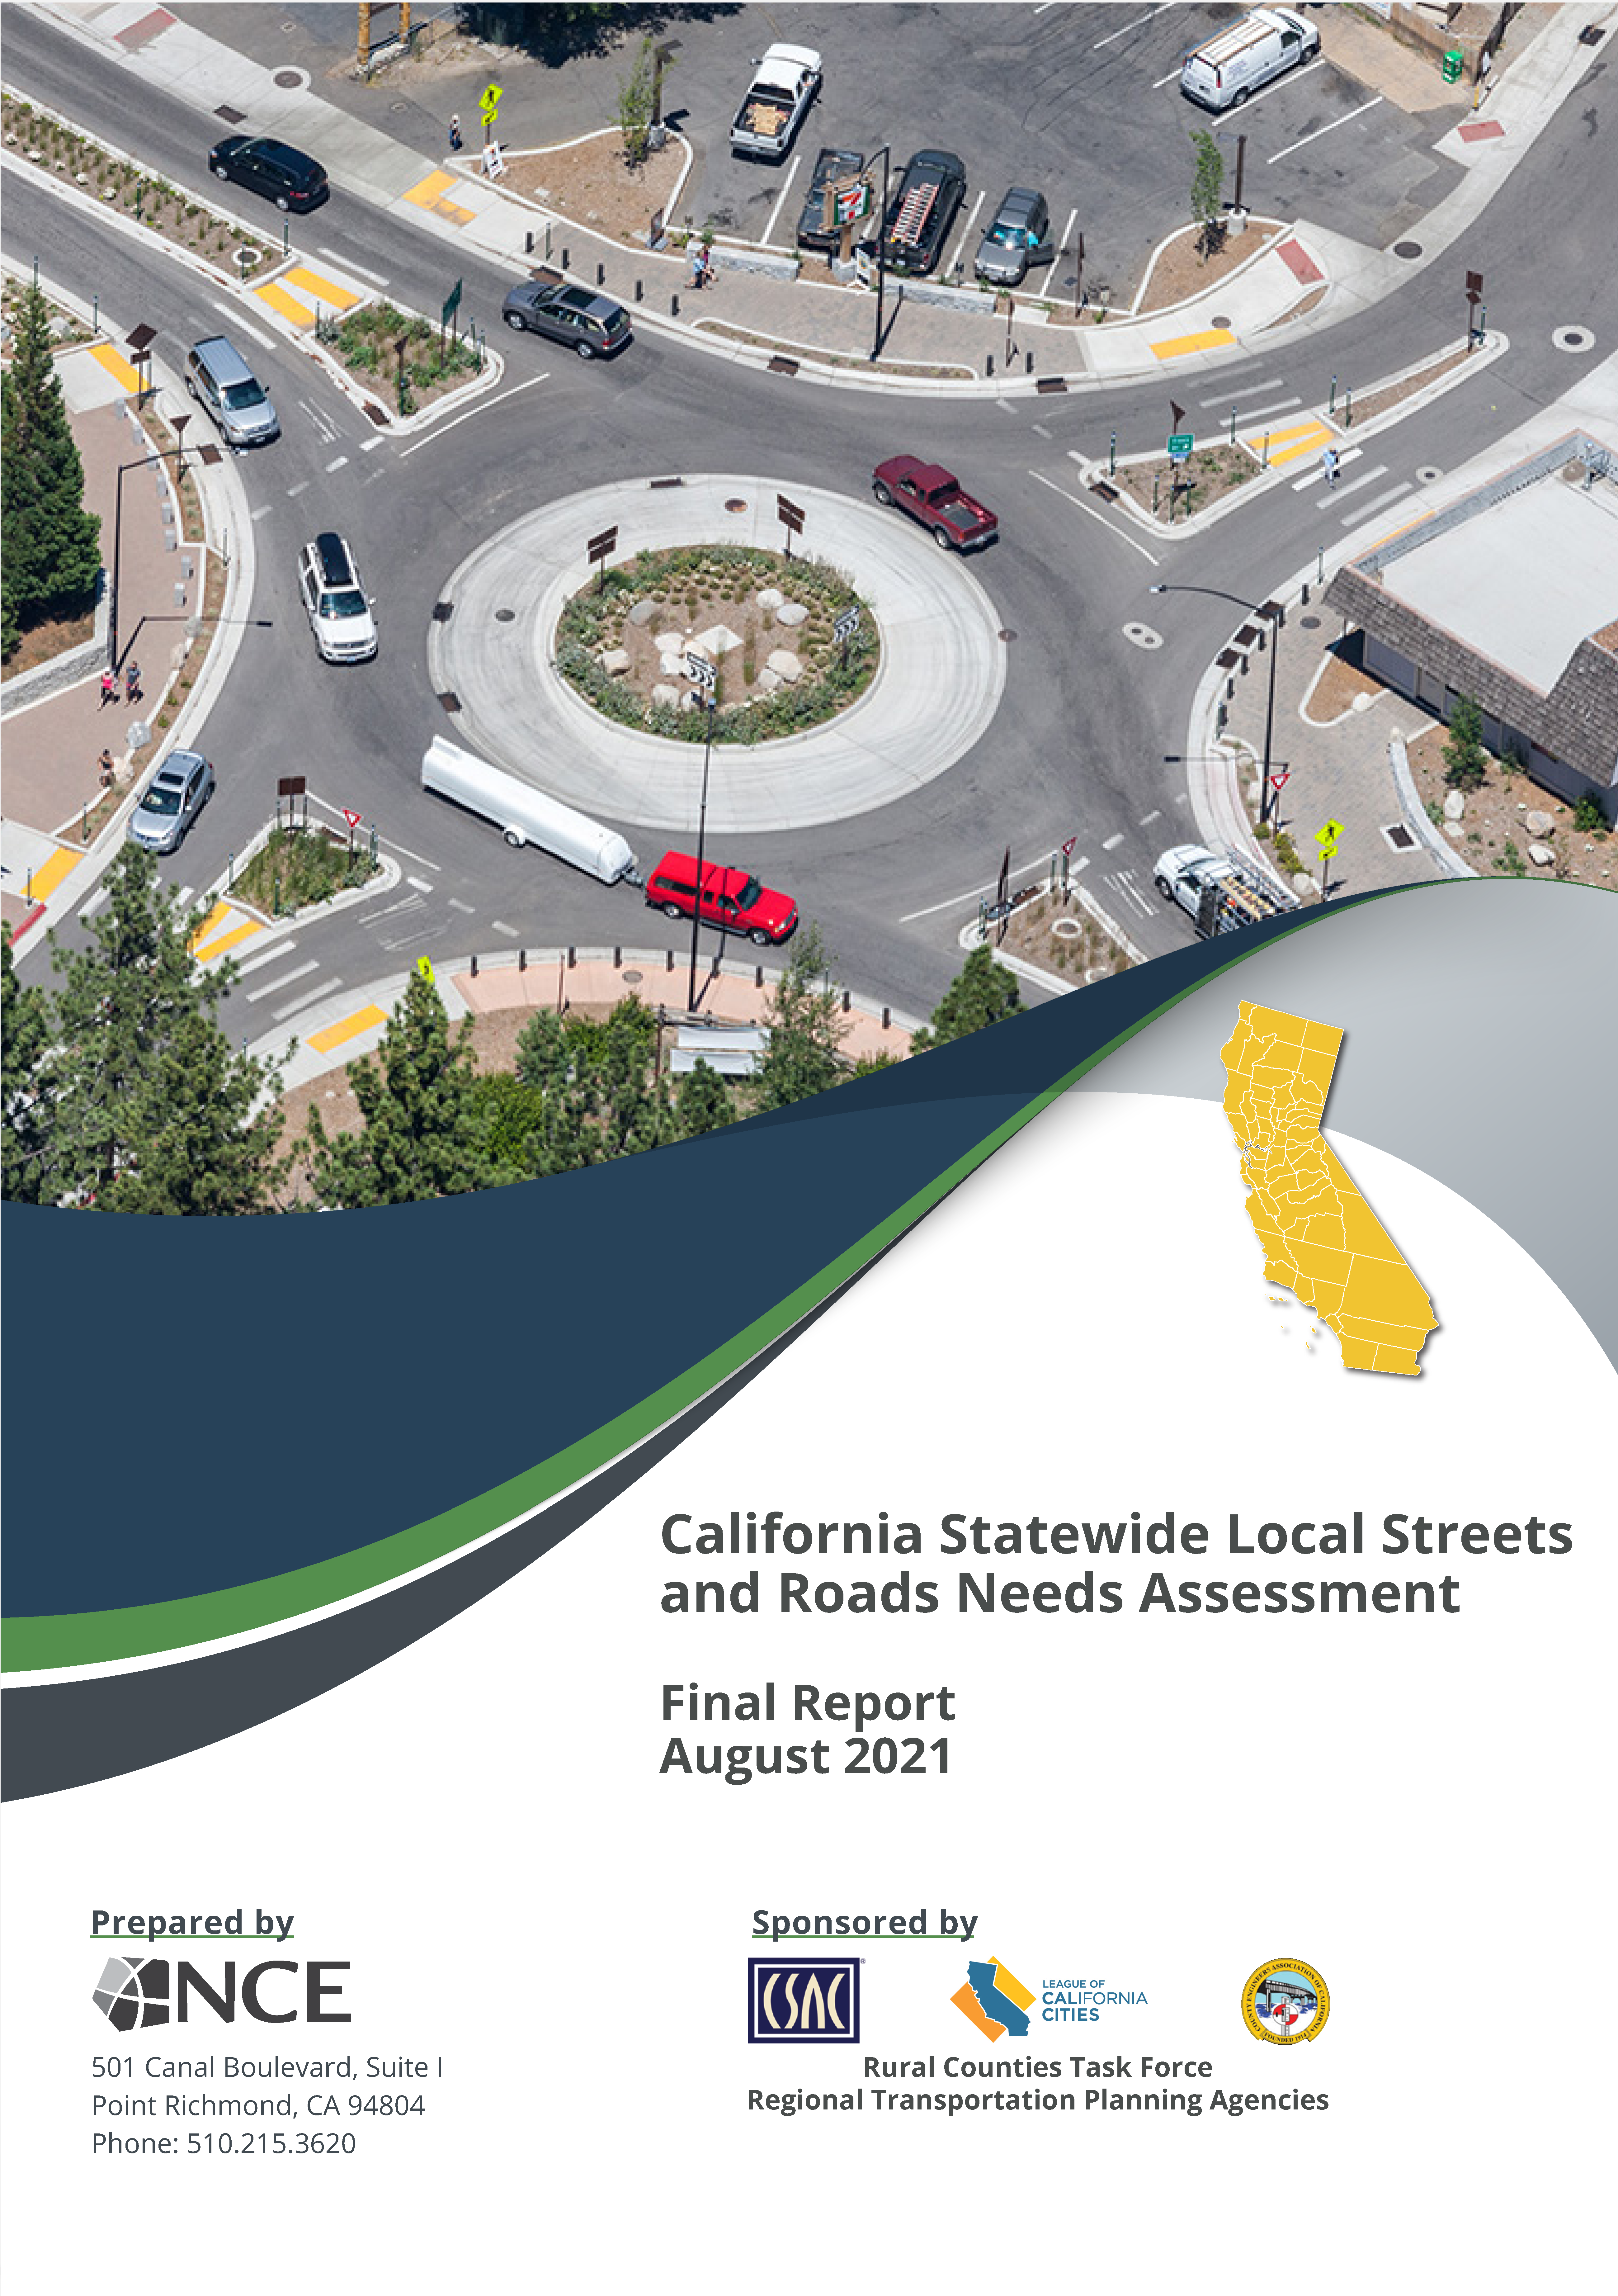 Image of 2020 Statewide Local Streets and Roads Needs Assessment Report Cover